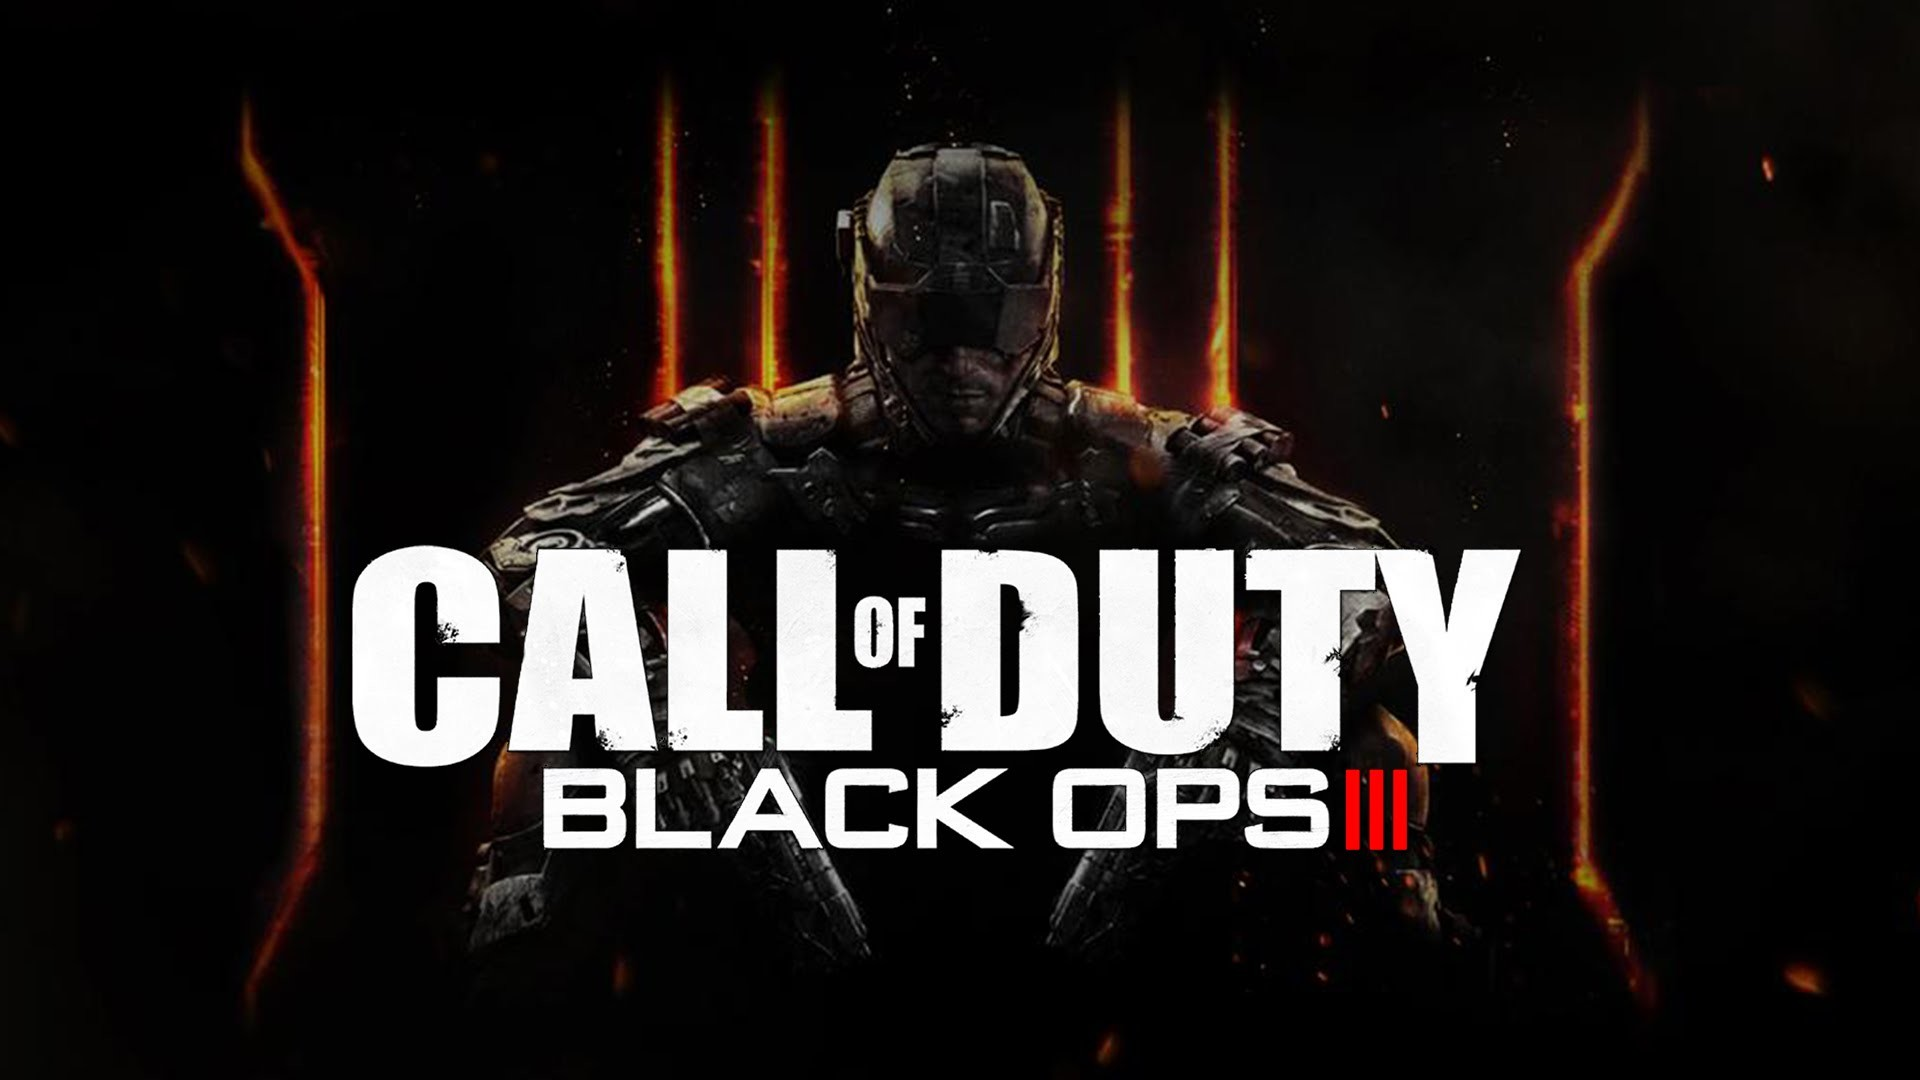 … Call Of Duty Black Ops 3 (02) …